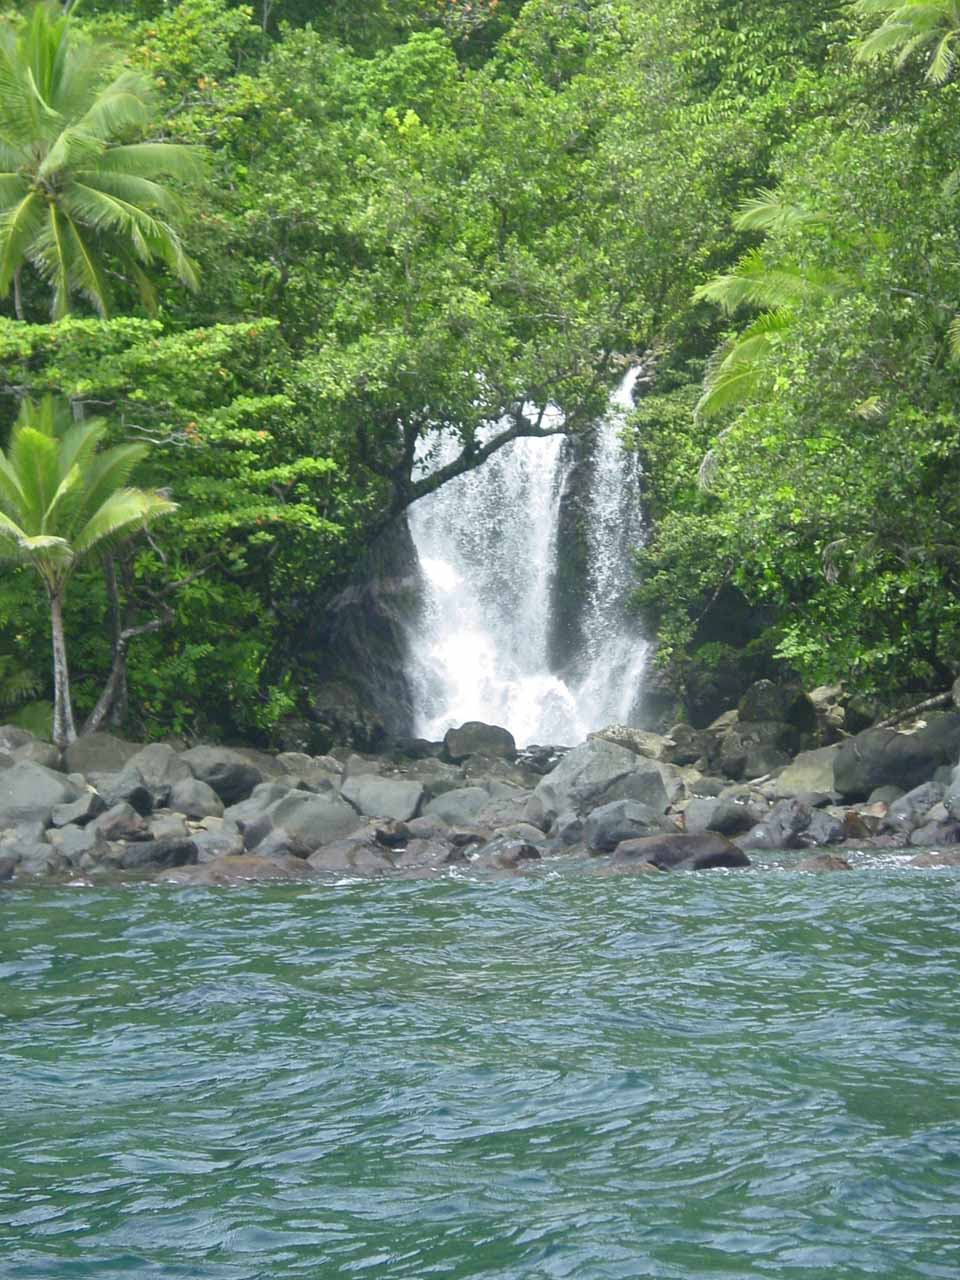 Another one of many waterfalls on the Eastern Taveuni Coast